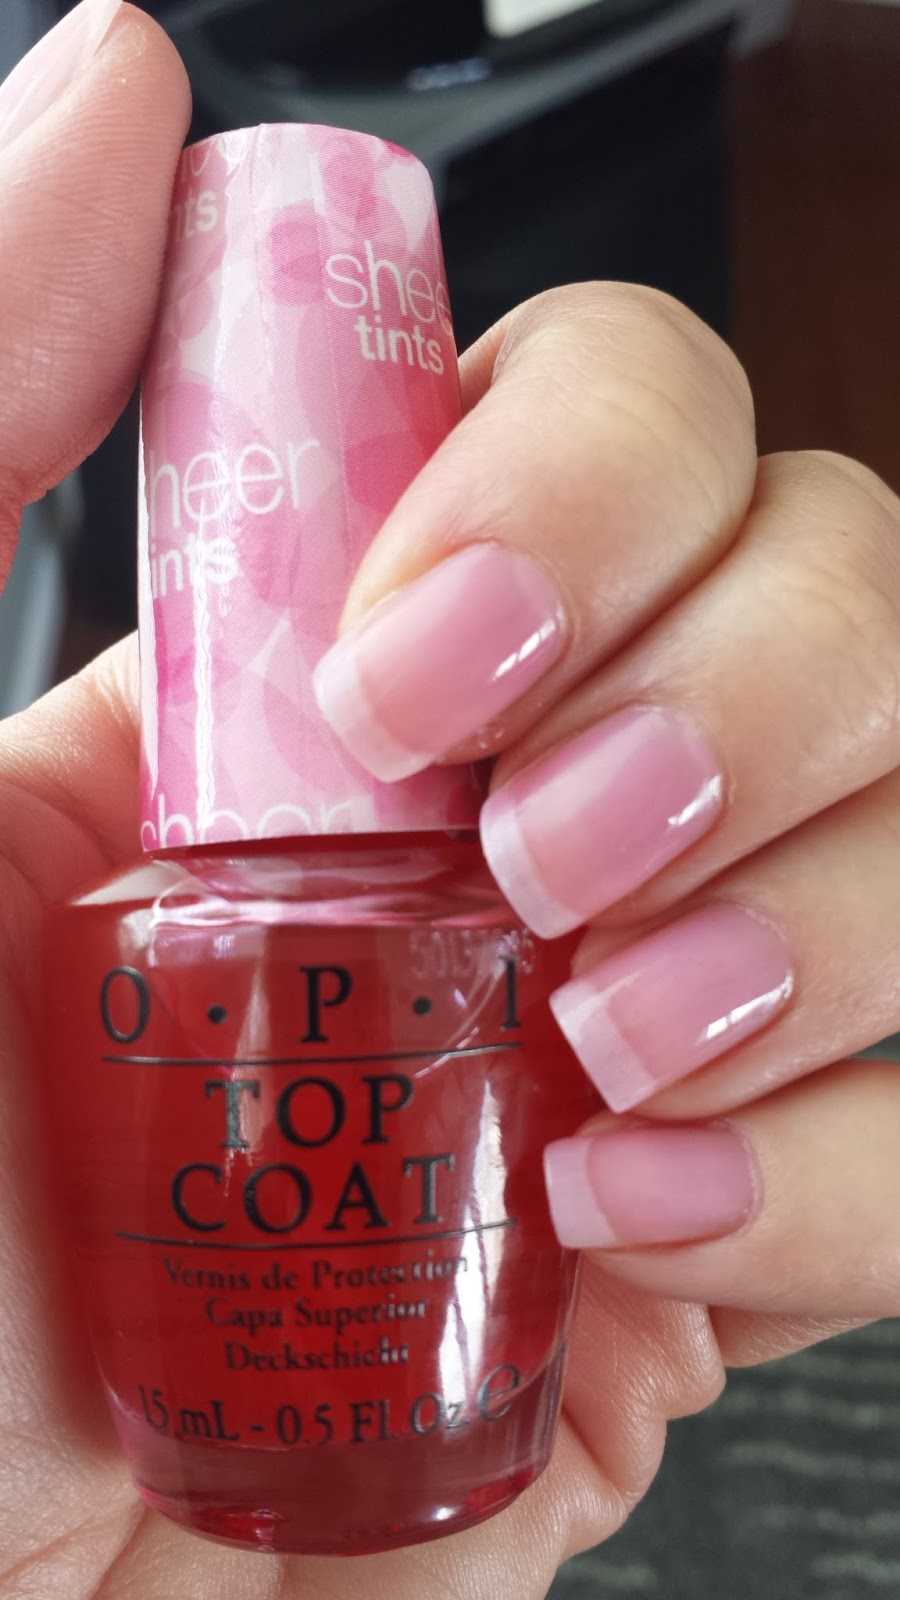 OPI Sheer Tint in Be Magentale with Me